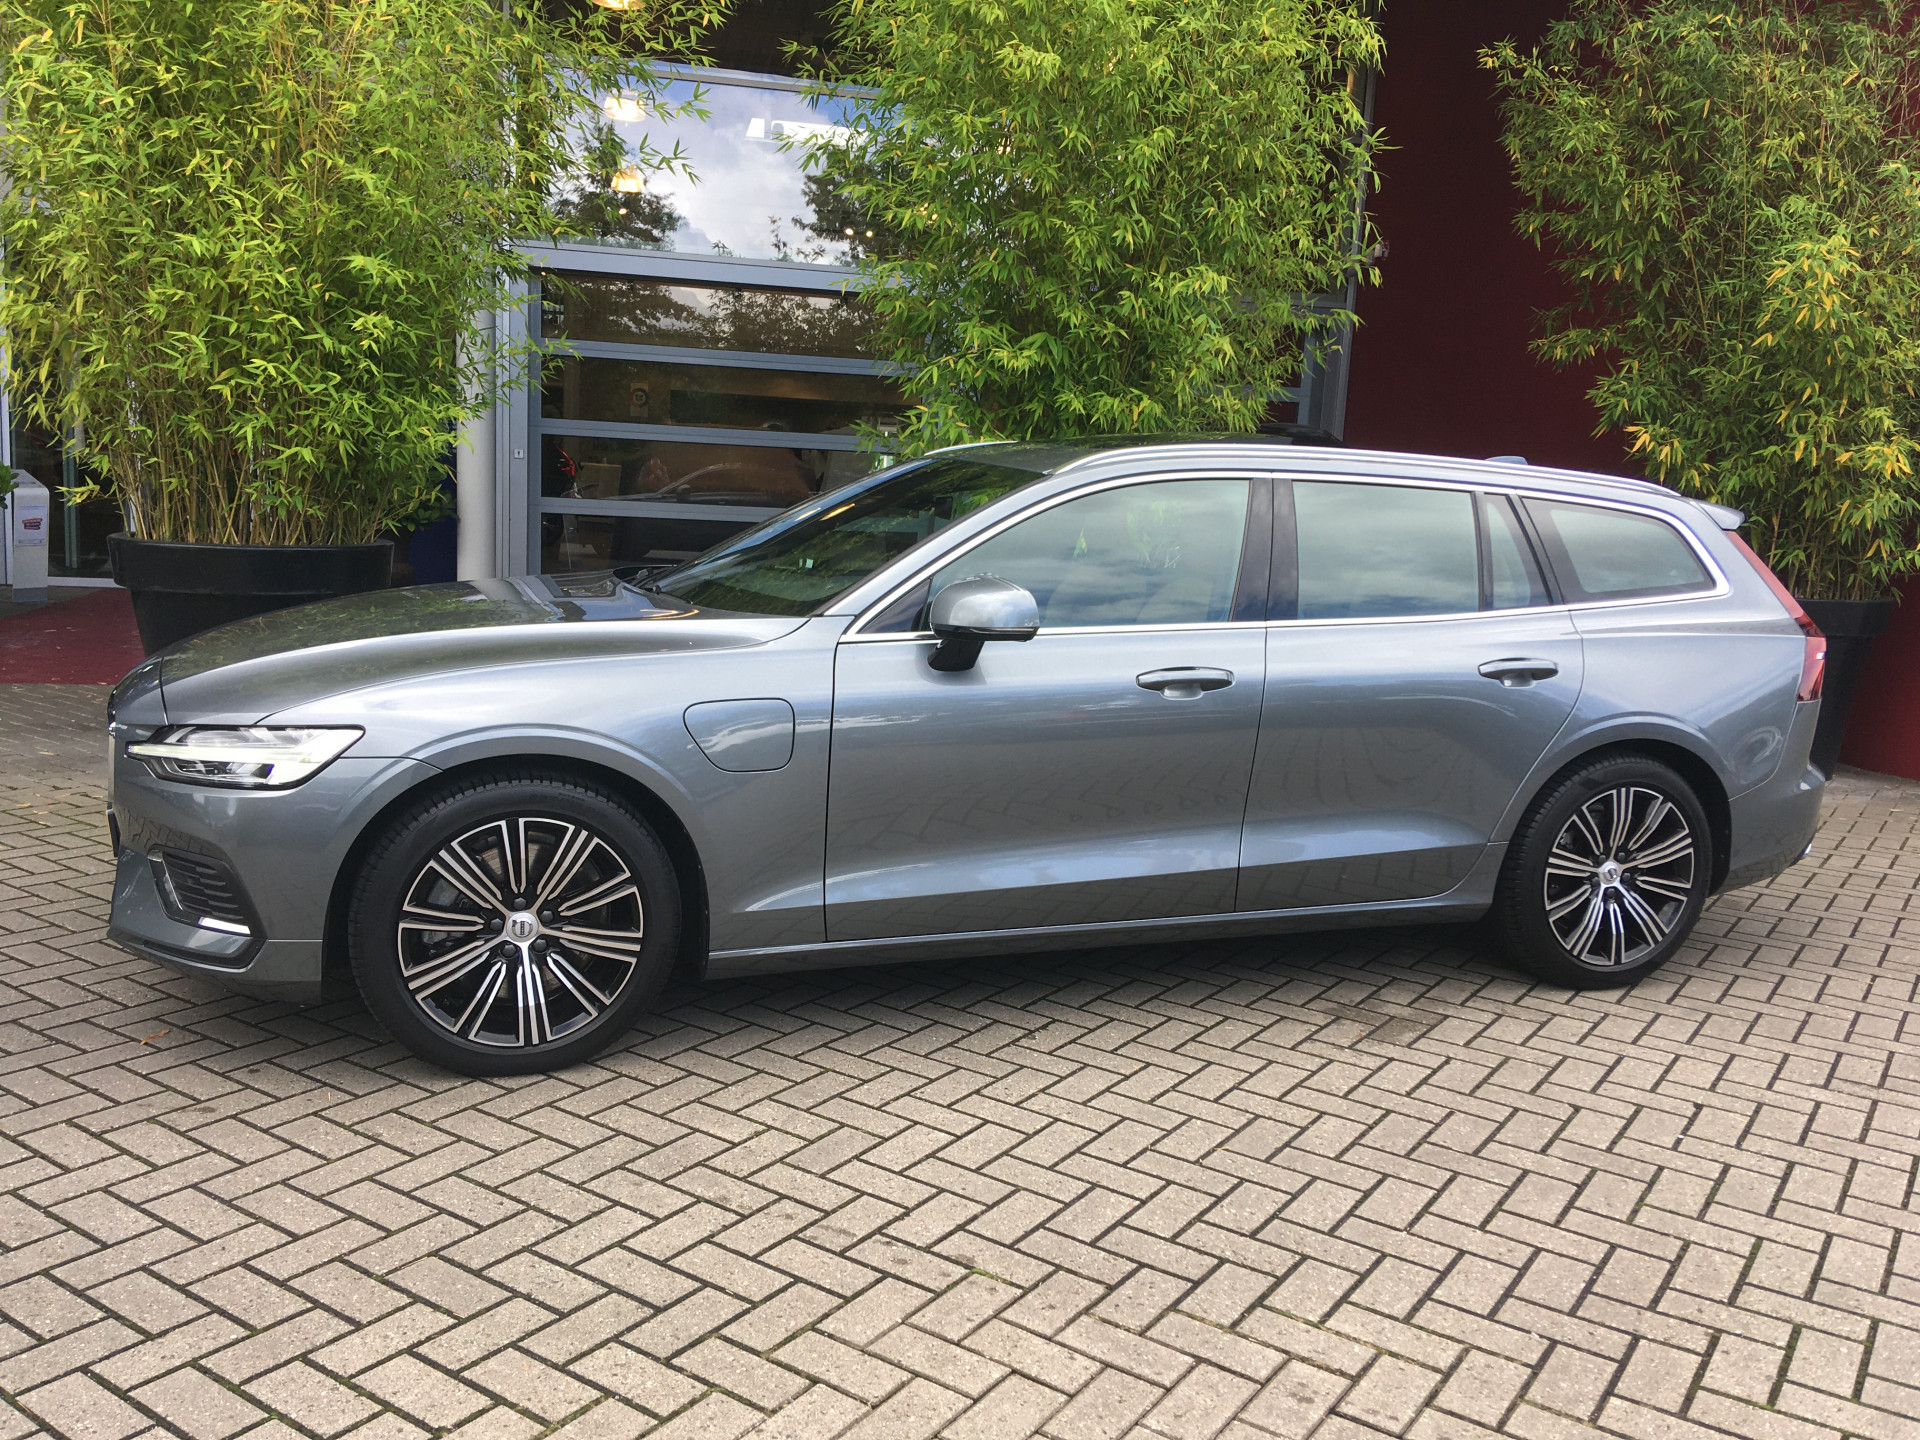 Volvo V60 2.0 T8 Twin Engine AWD Inscription Geatronic